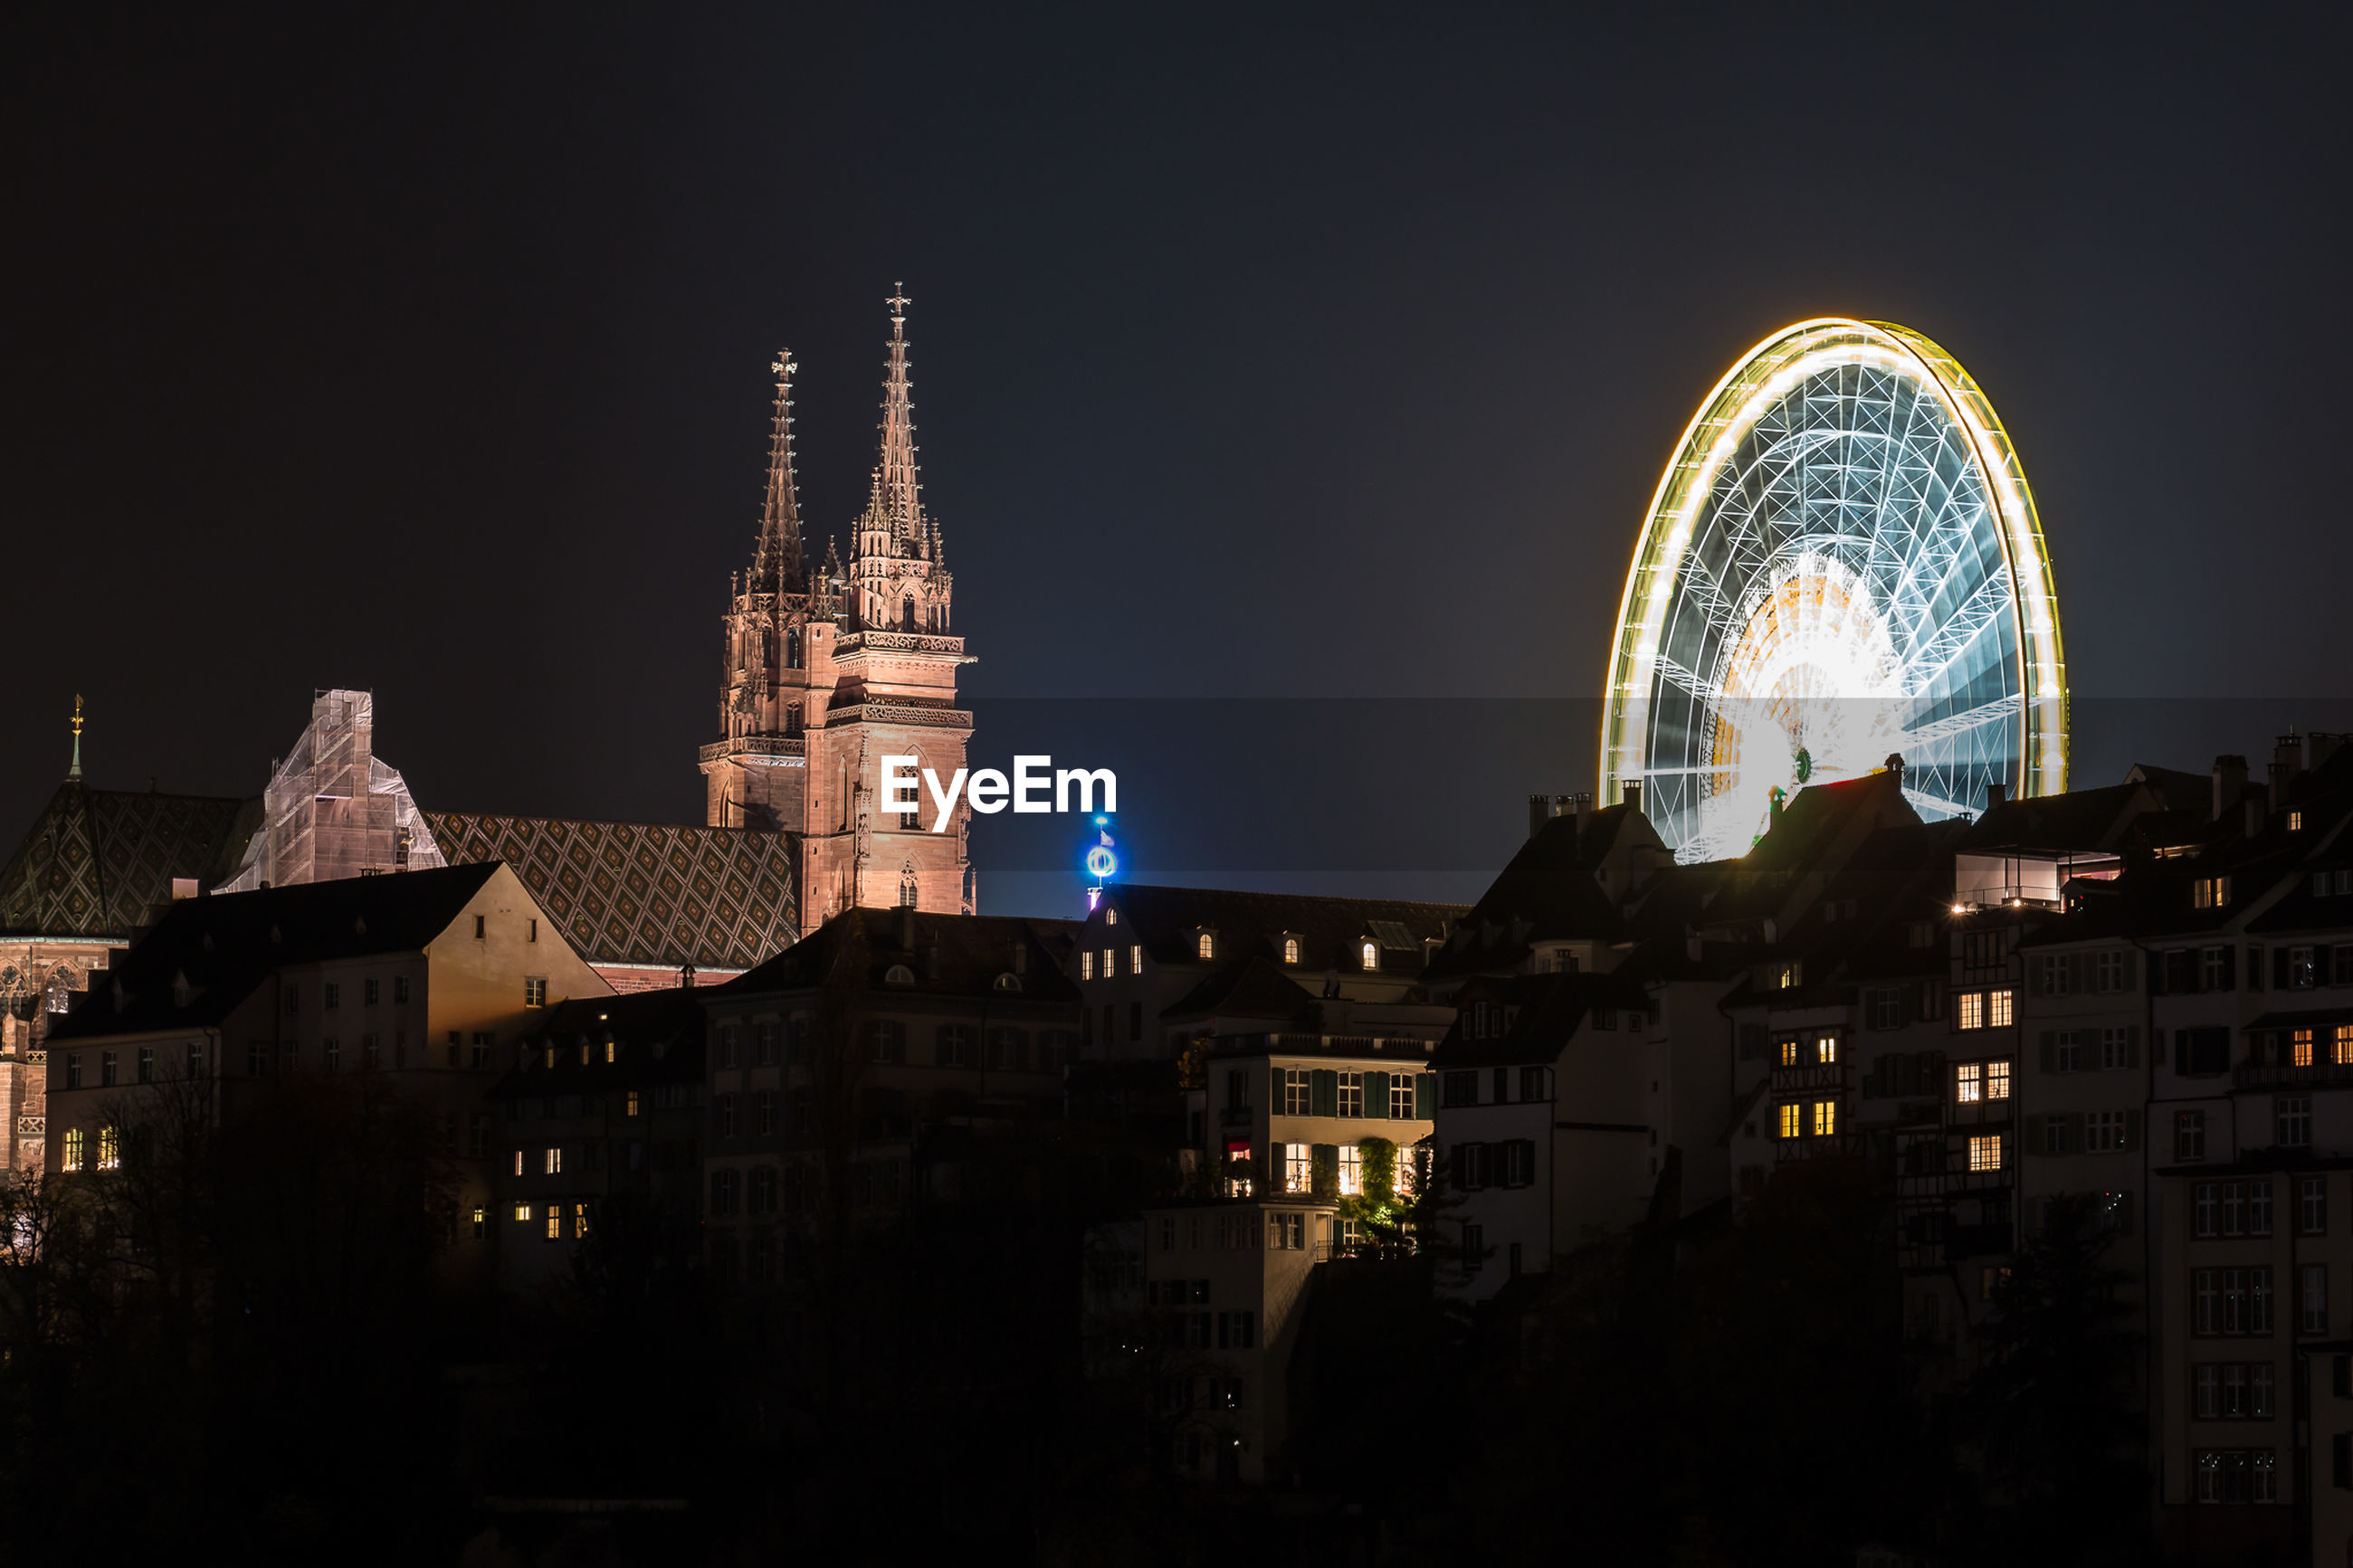 Illuminated wiener riesenrad and church in city against clear sky